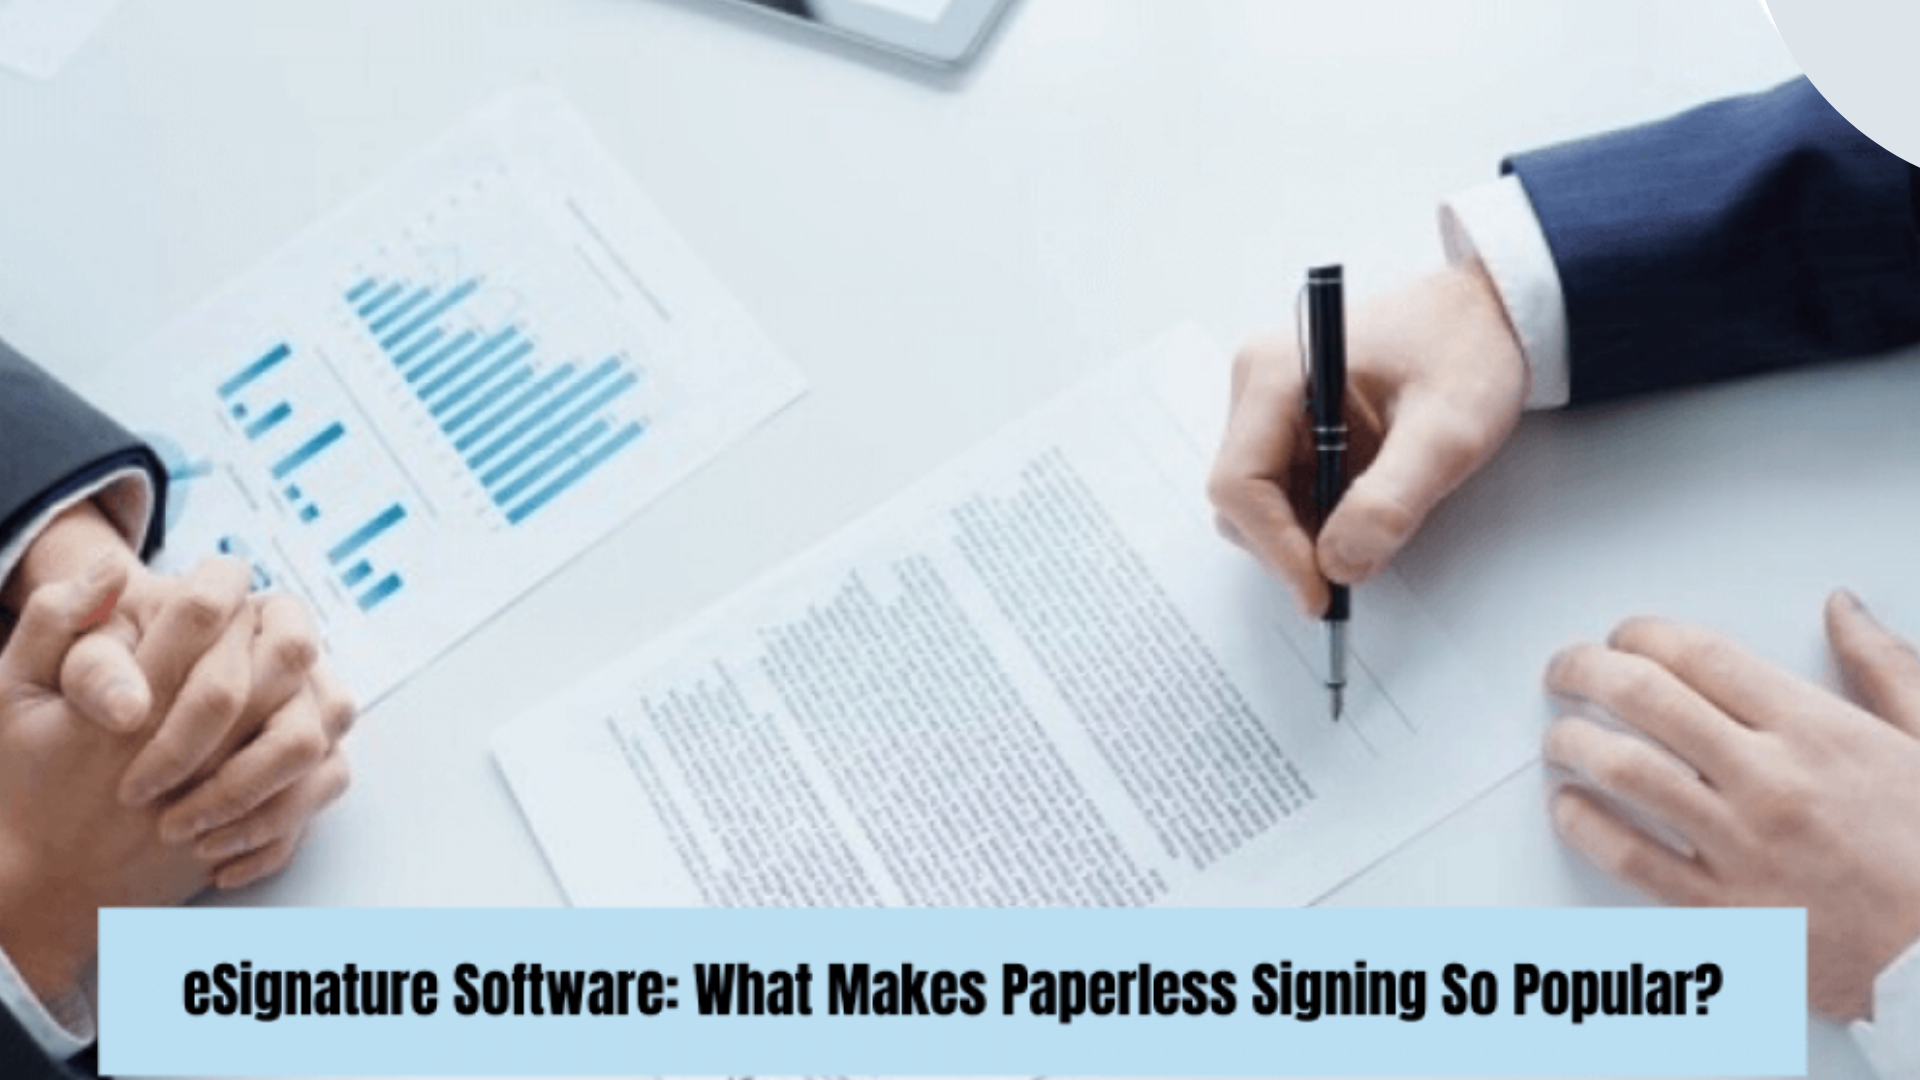 Paperless-Signing-So-Popular